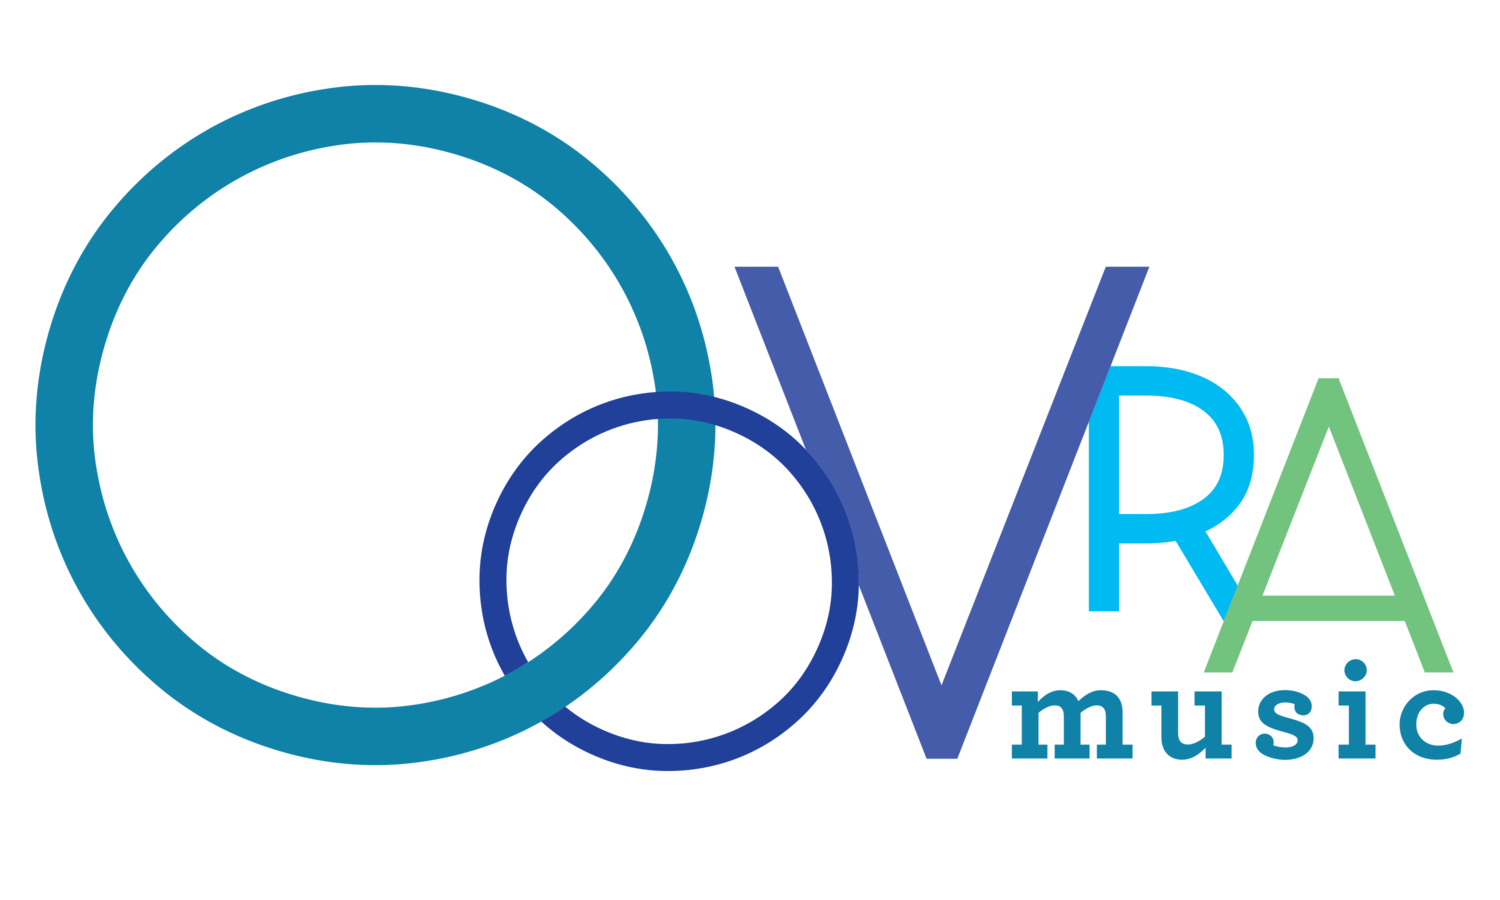 Oovra Music - music licensing for visual media from award-winning composers